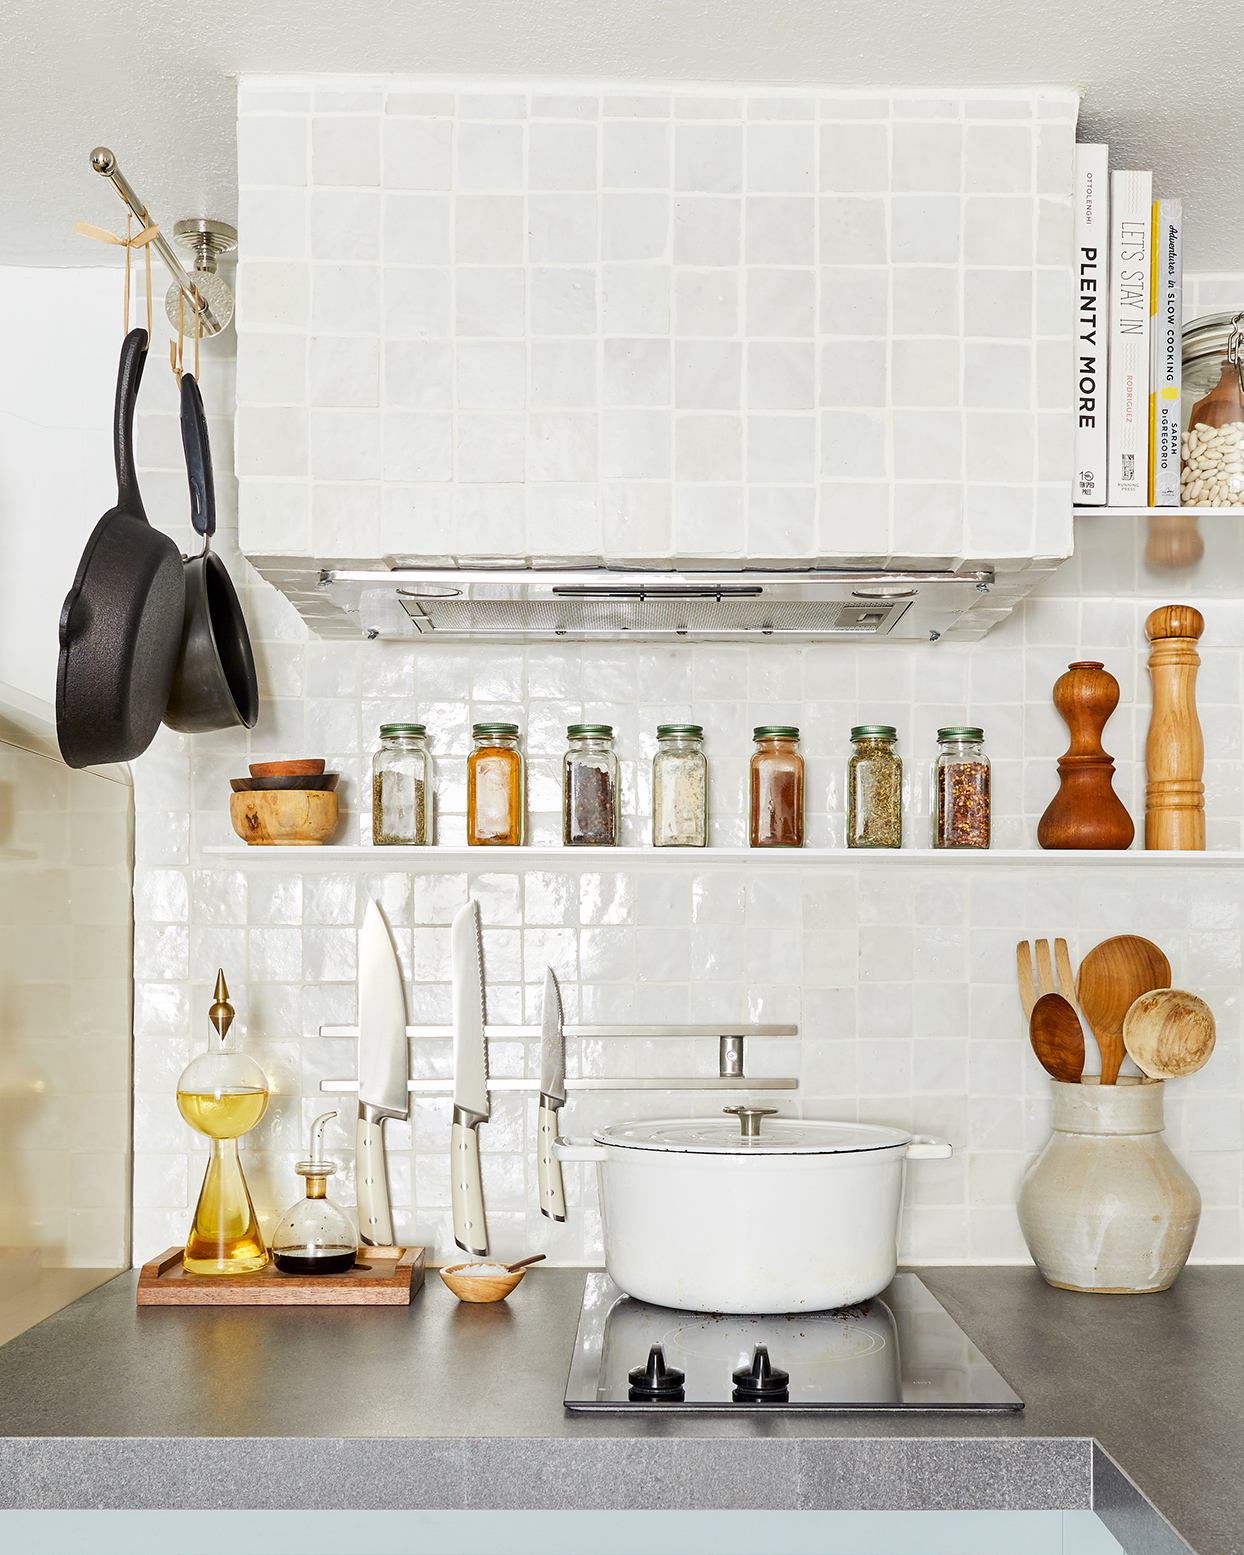 white square tile backsplash with spice rack